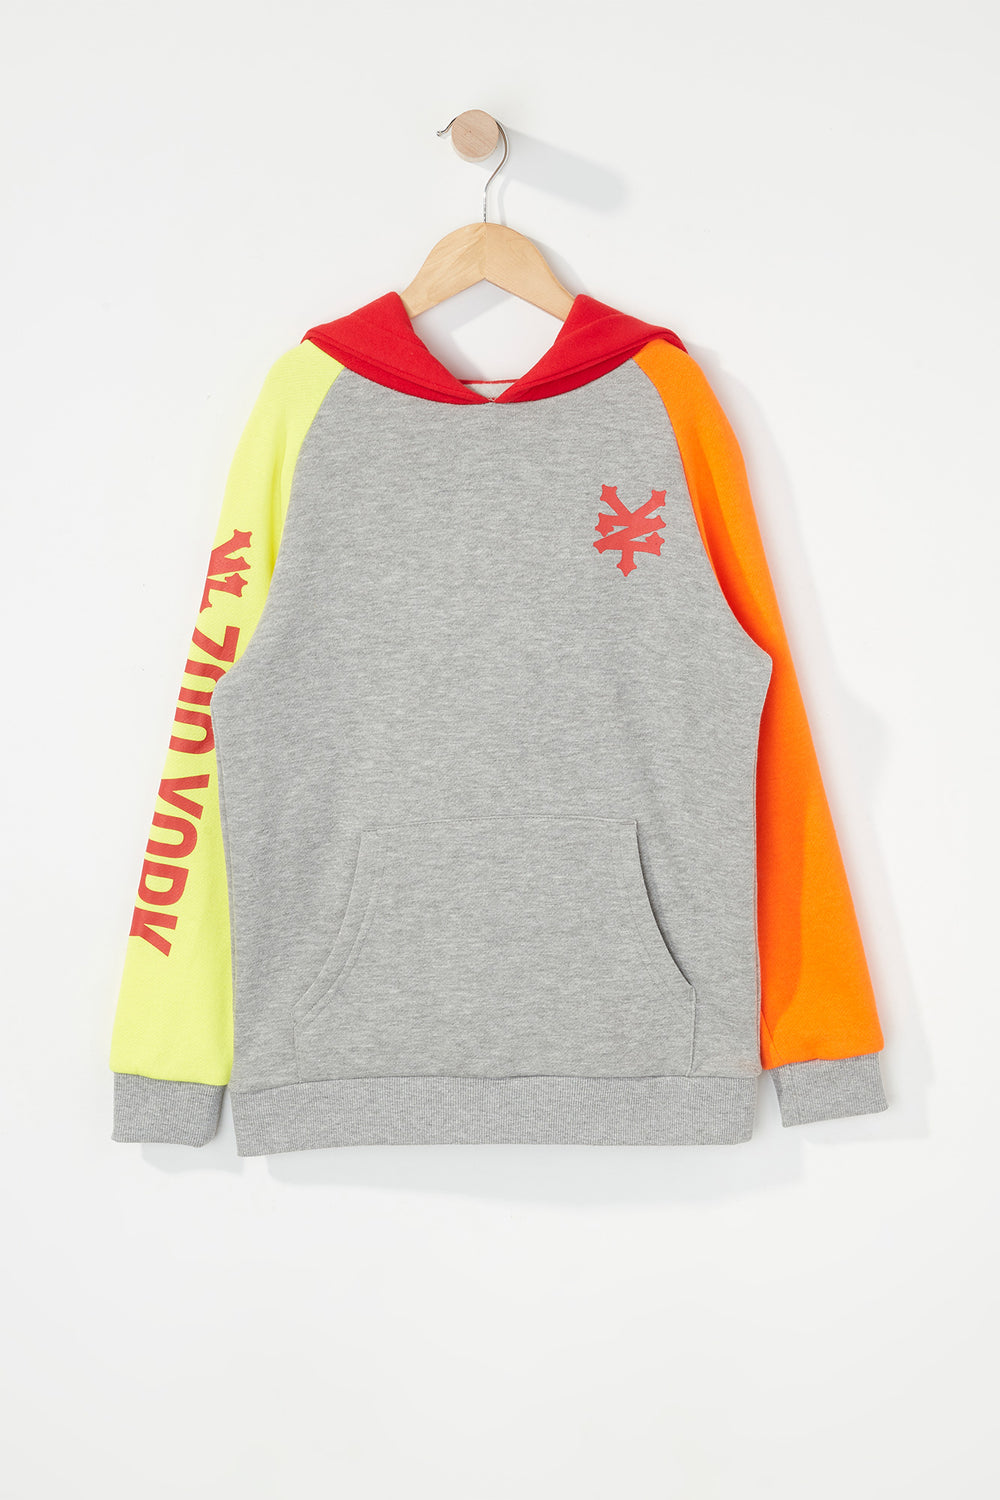 Zoo York Boys 90s Style Colour Block Hoodie Heather Grey